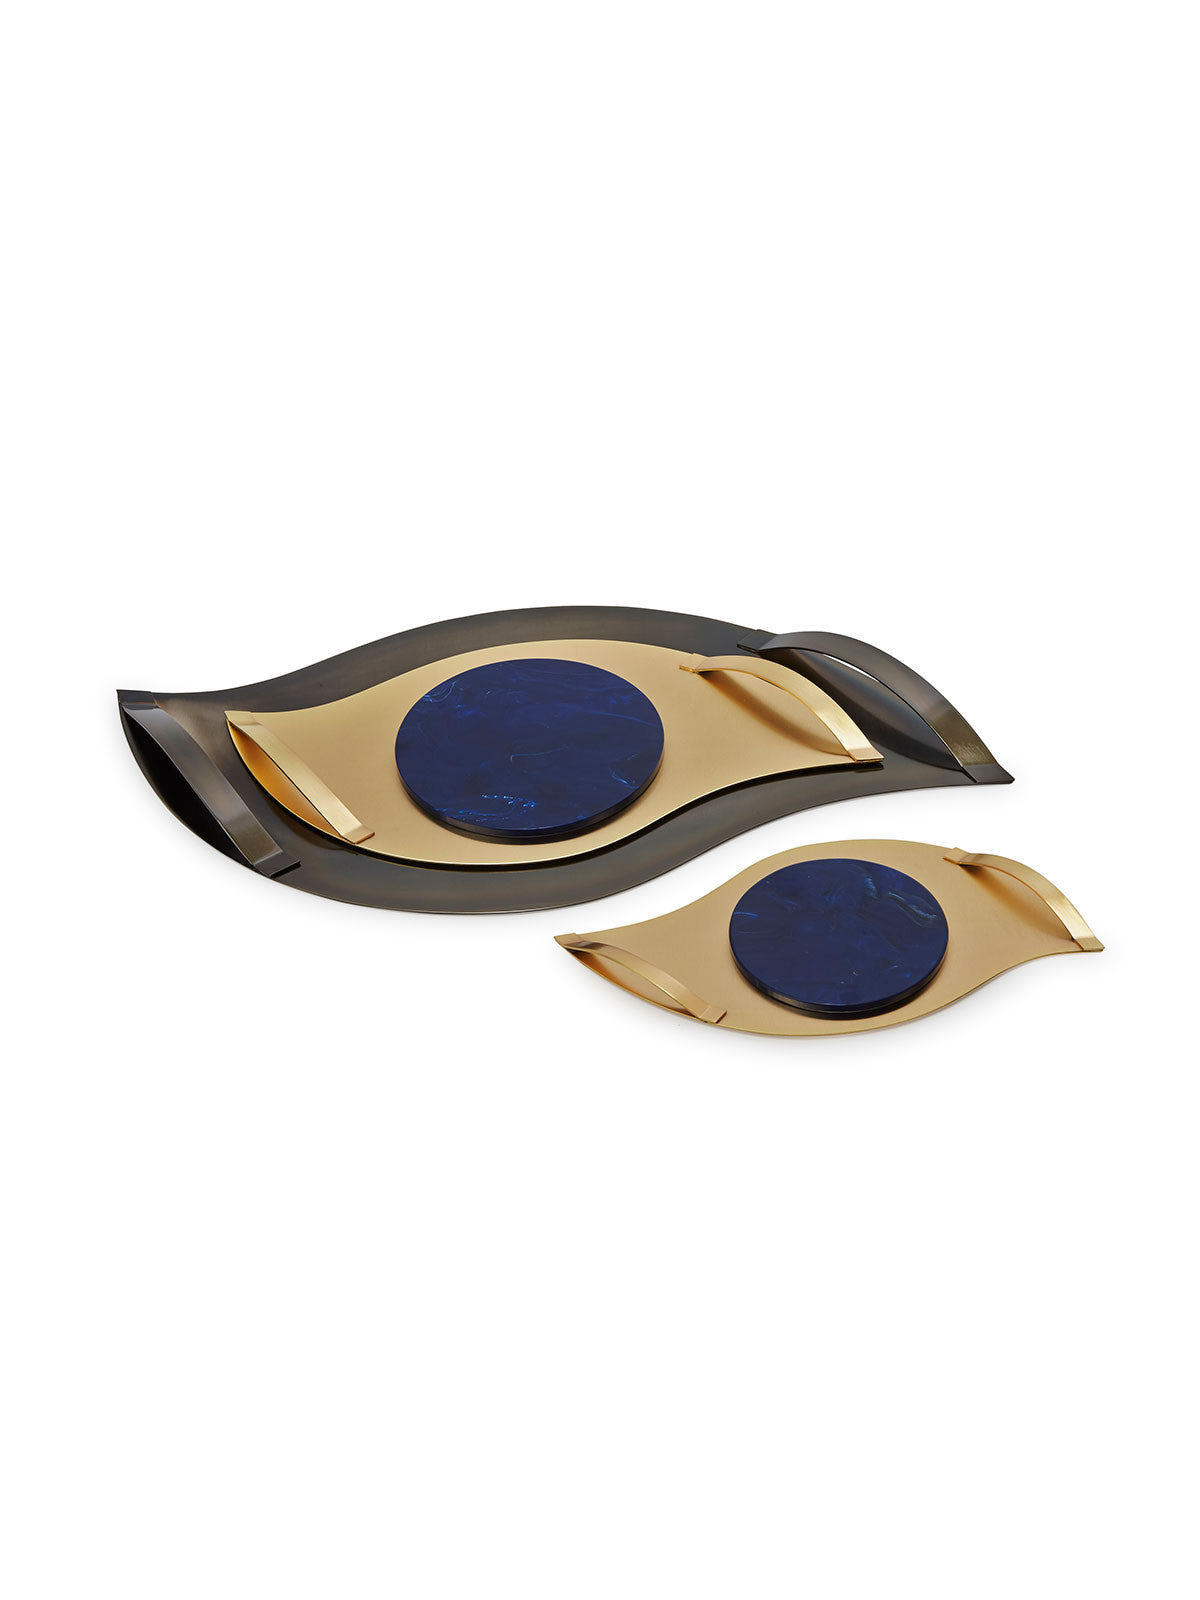 Eye cut Tray designed by Alexandra Koumba